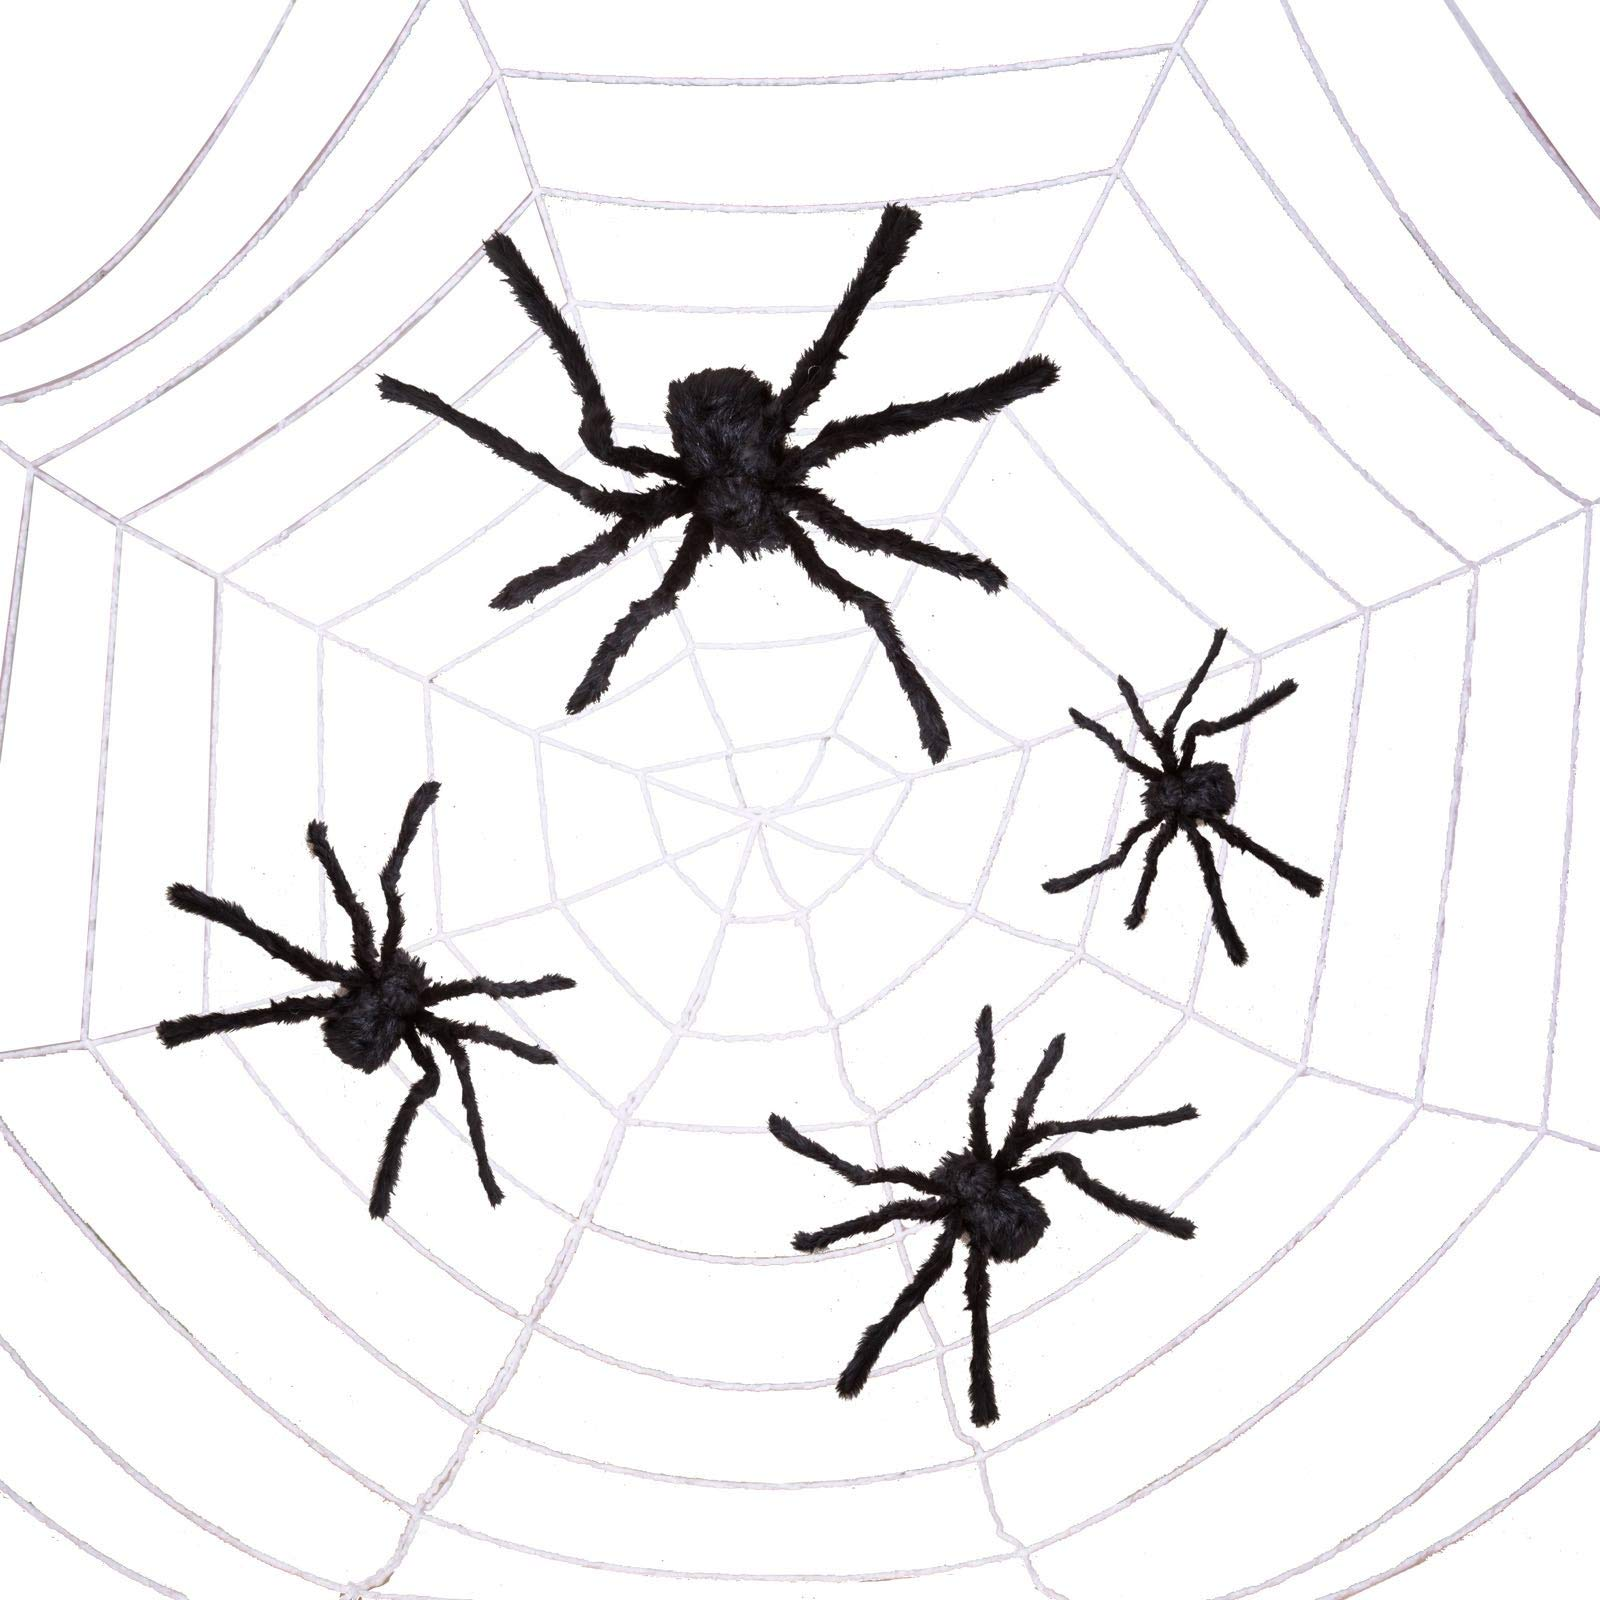 Four Halloween Realistic Hairy Spiders Set, Valuable Halloween Props, Halloween Spider Set for Indoor and Outside Decorations by JOYIN (Image #3)